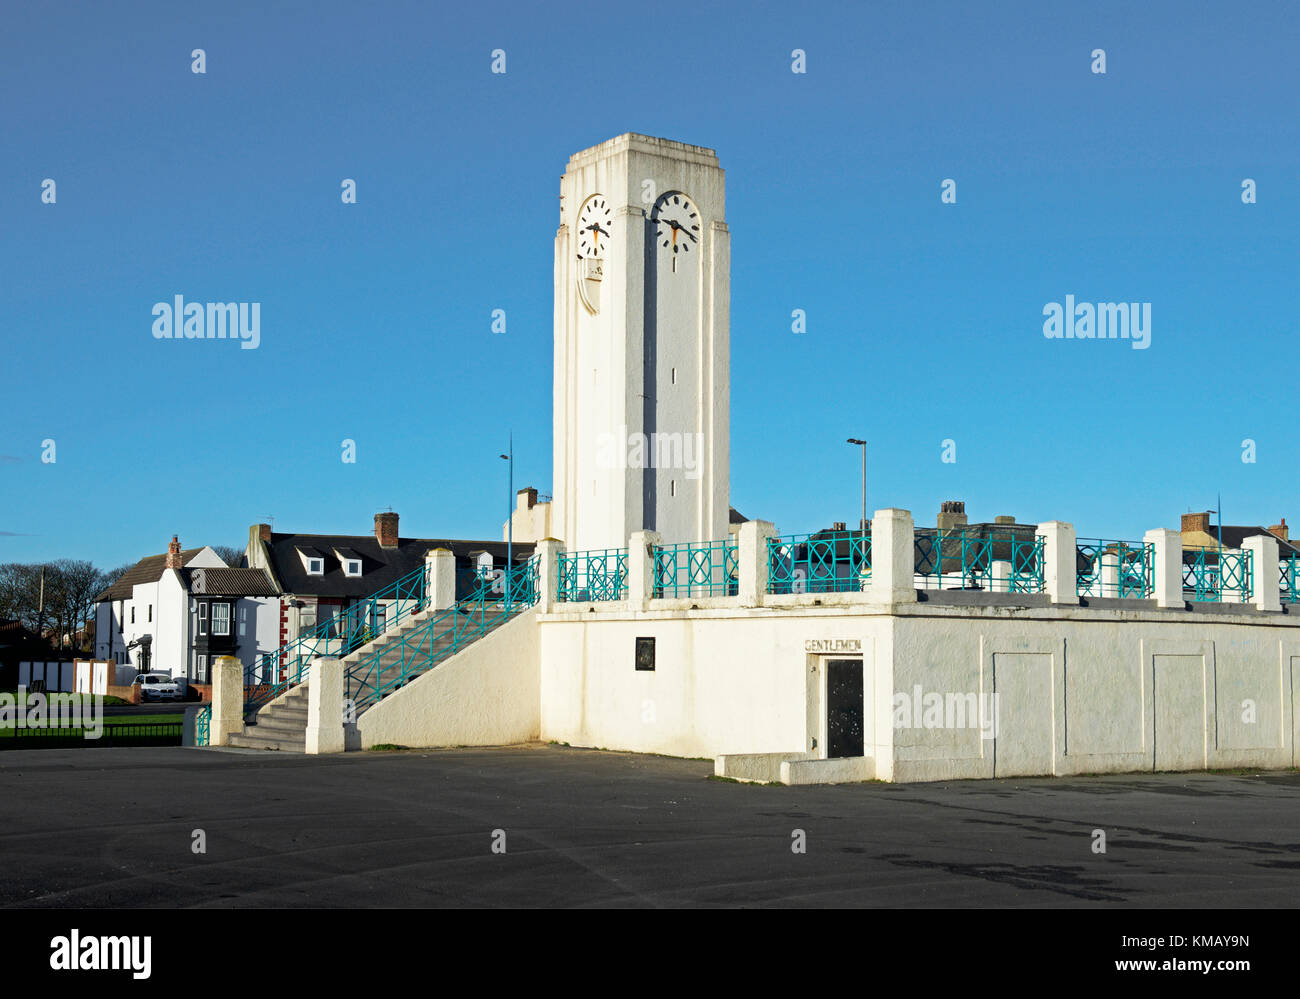 The Clock Tower, Seaton Carew, County Durham, England UK - Stock Image